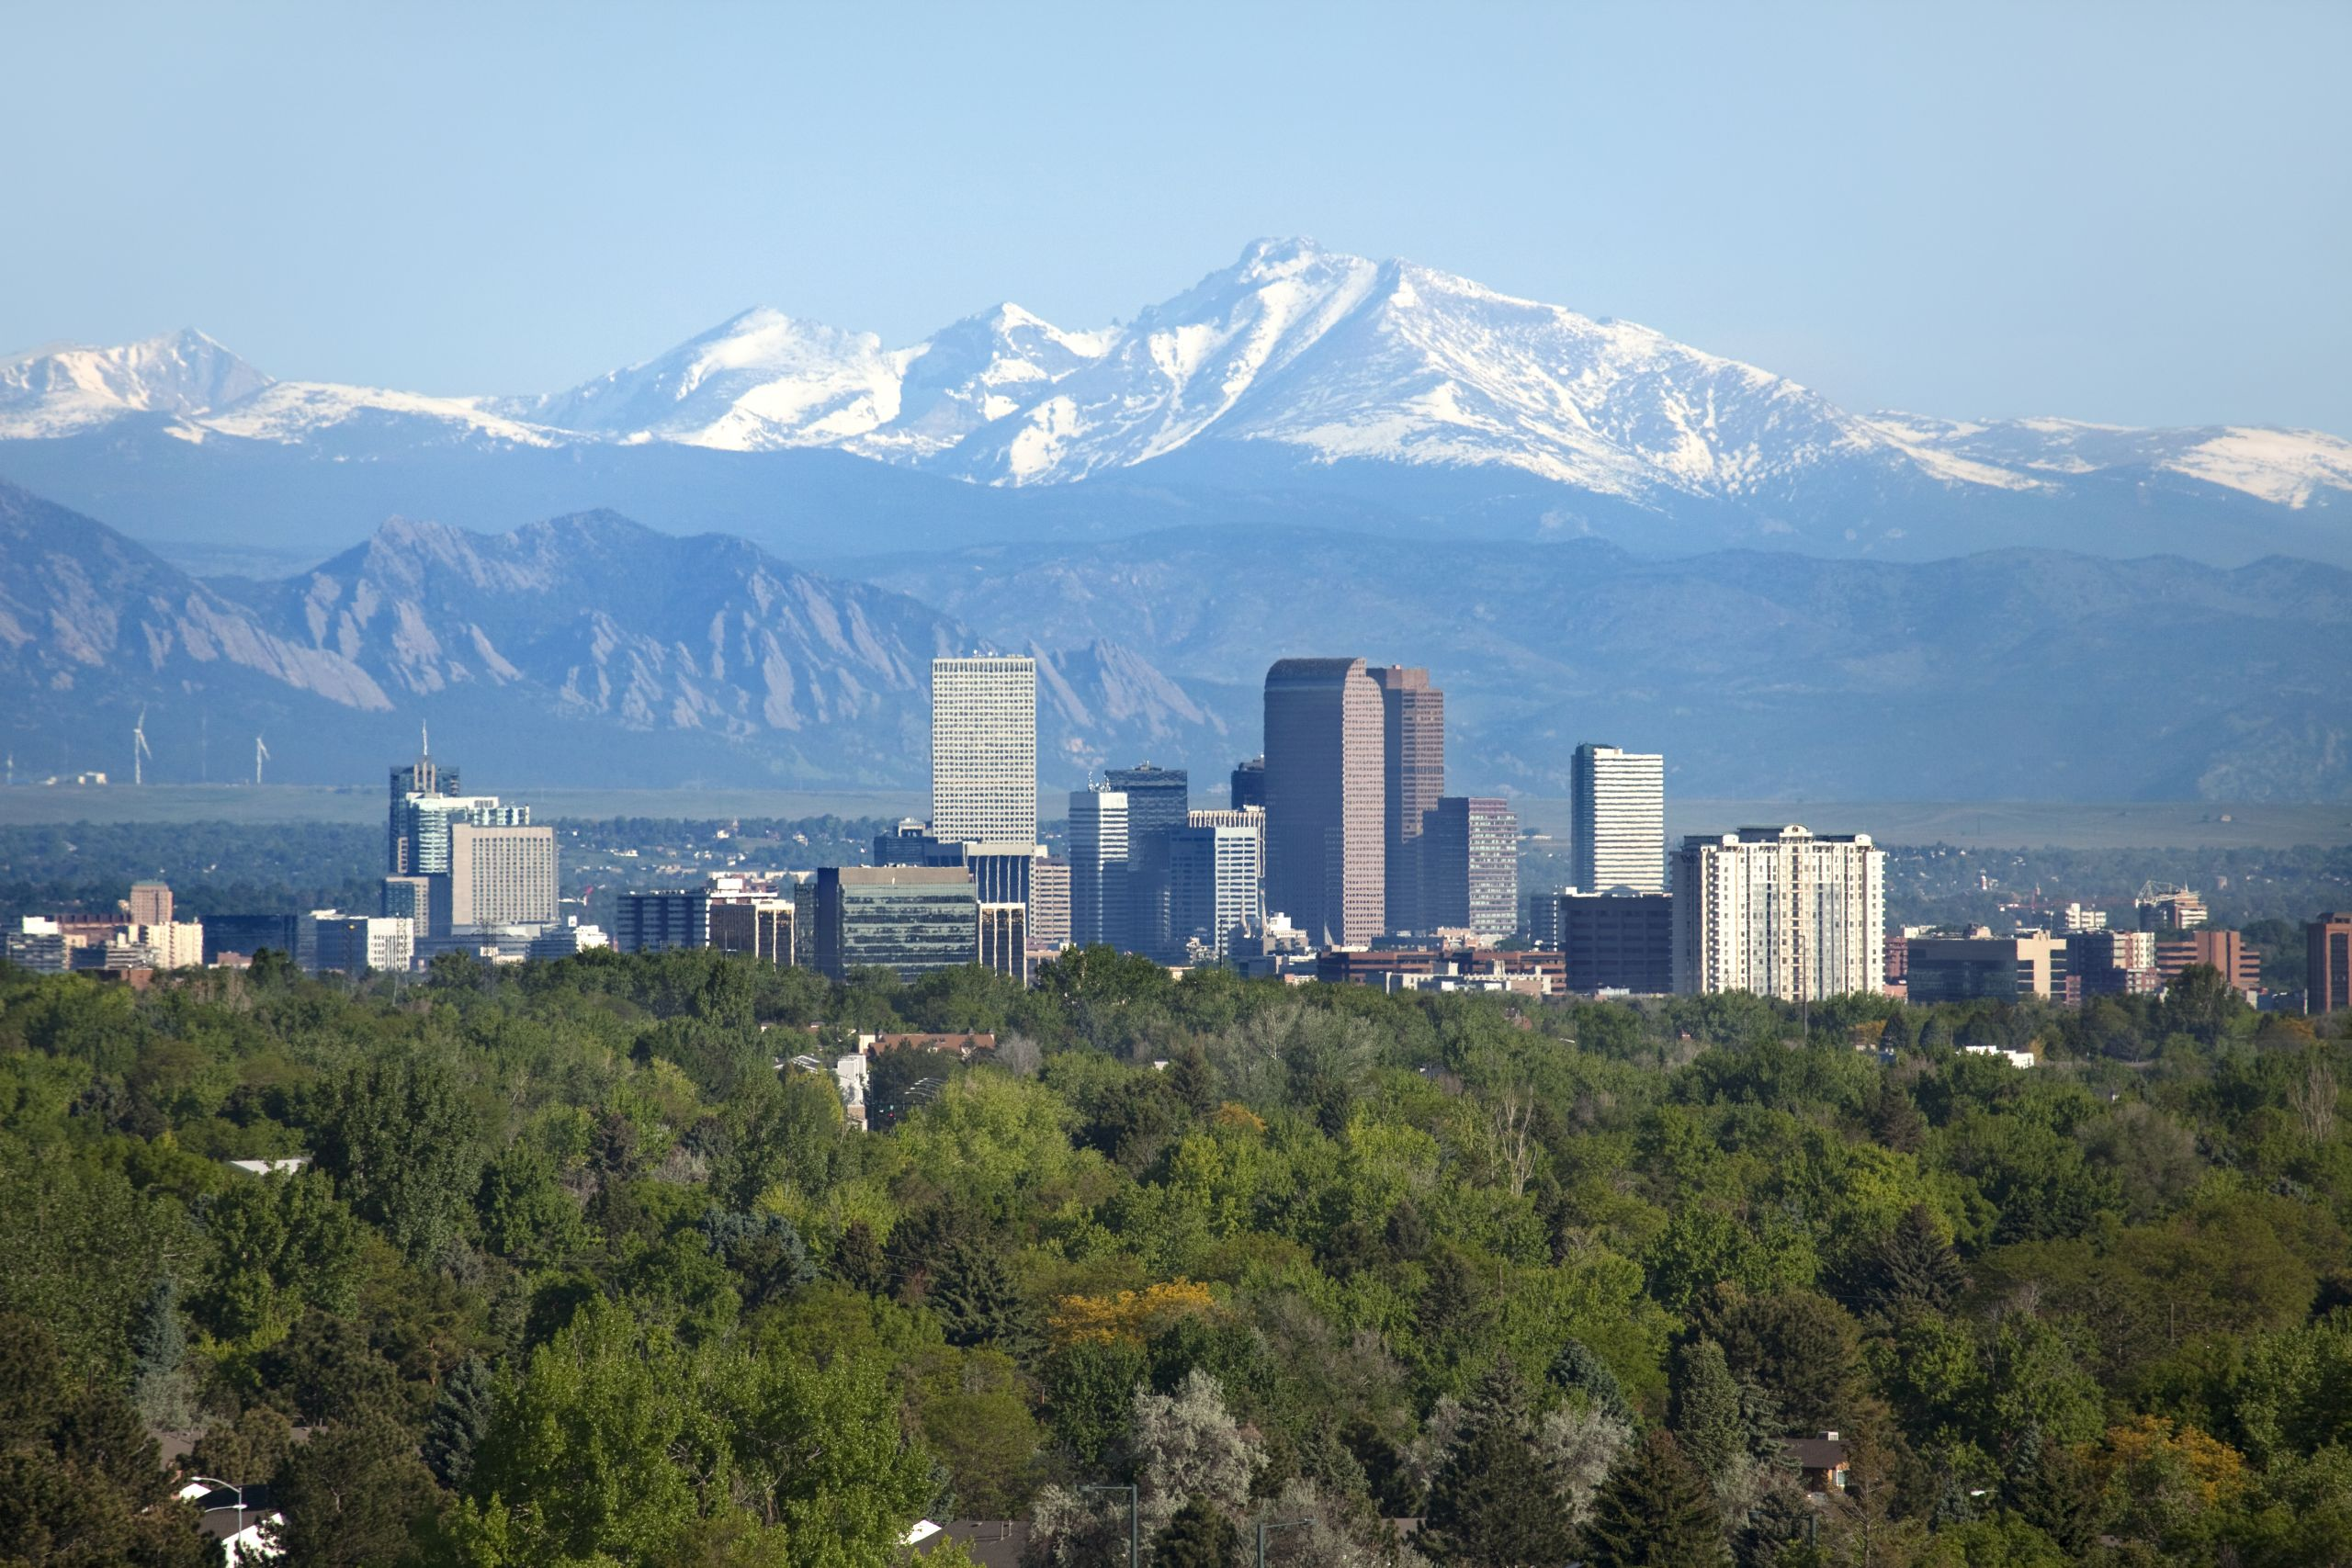 Let us help you find your new Colorado home.